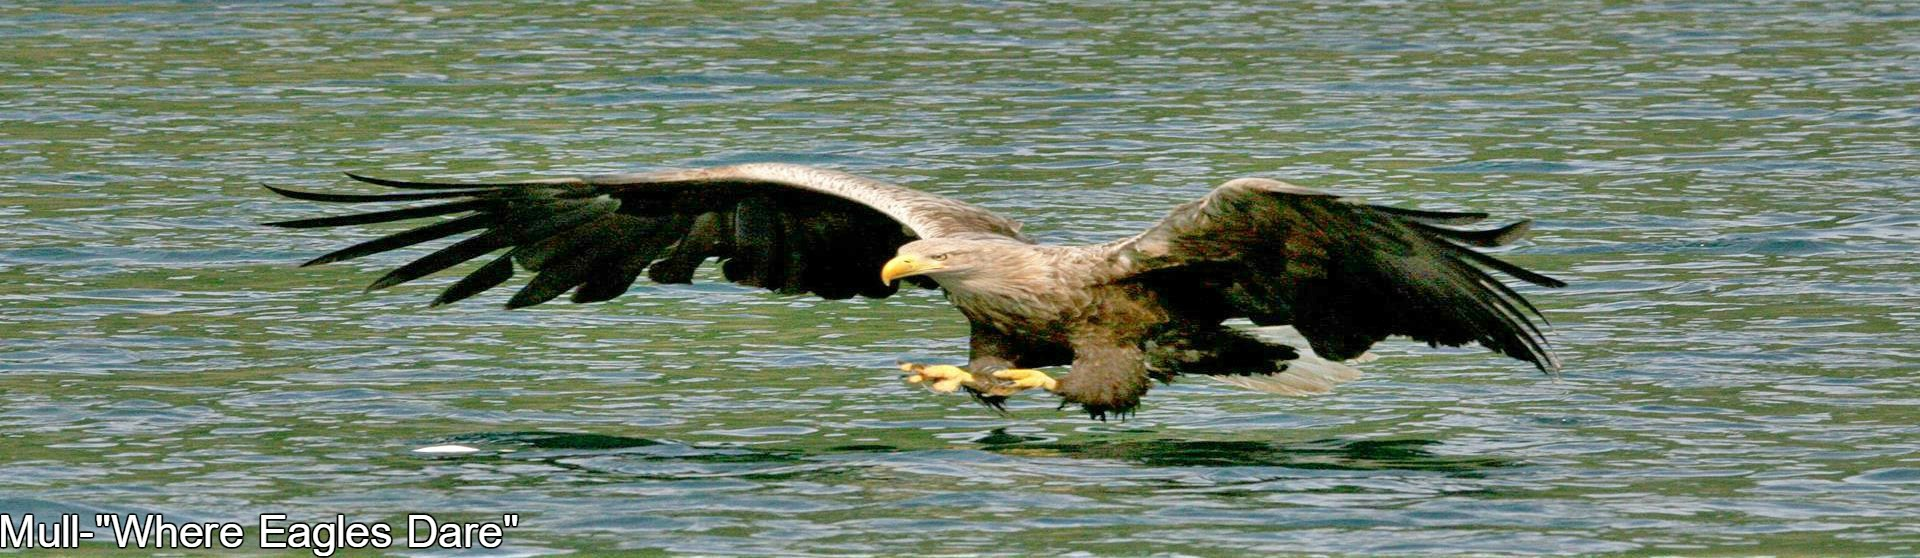 Sea Eagle,White tailed Eagle,Eagle Island,Fish Eagle,Isle of Mull,Mull